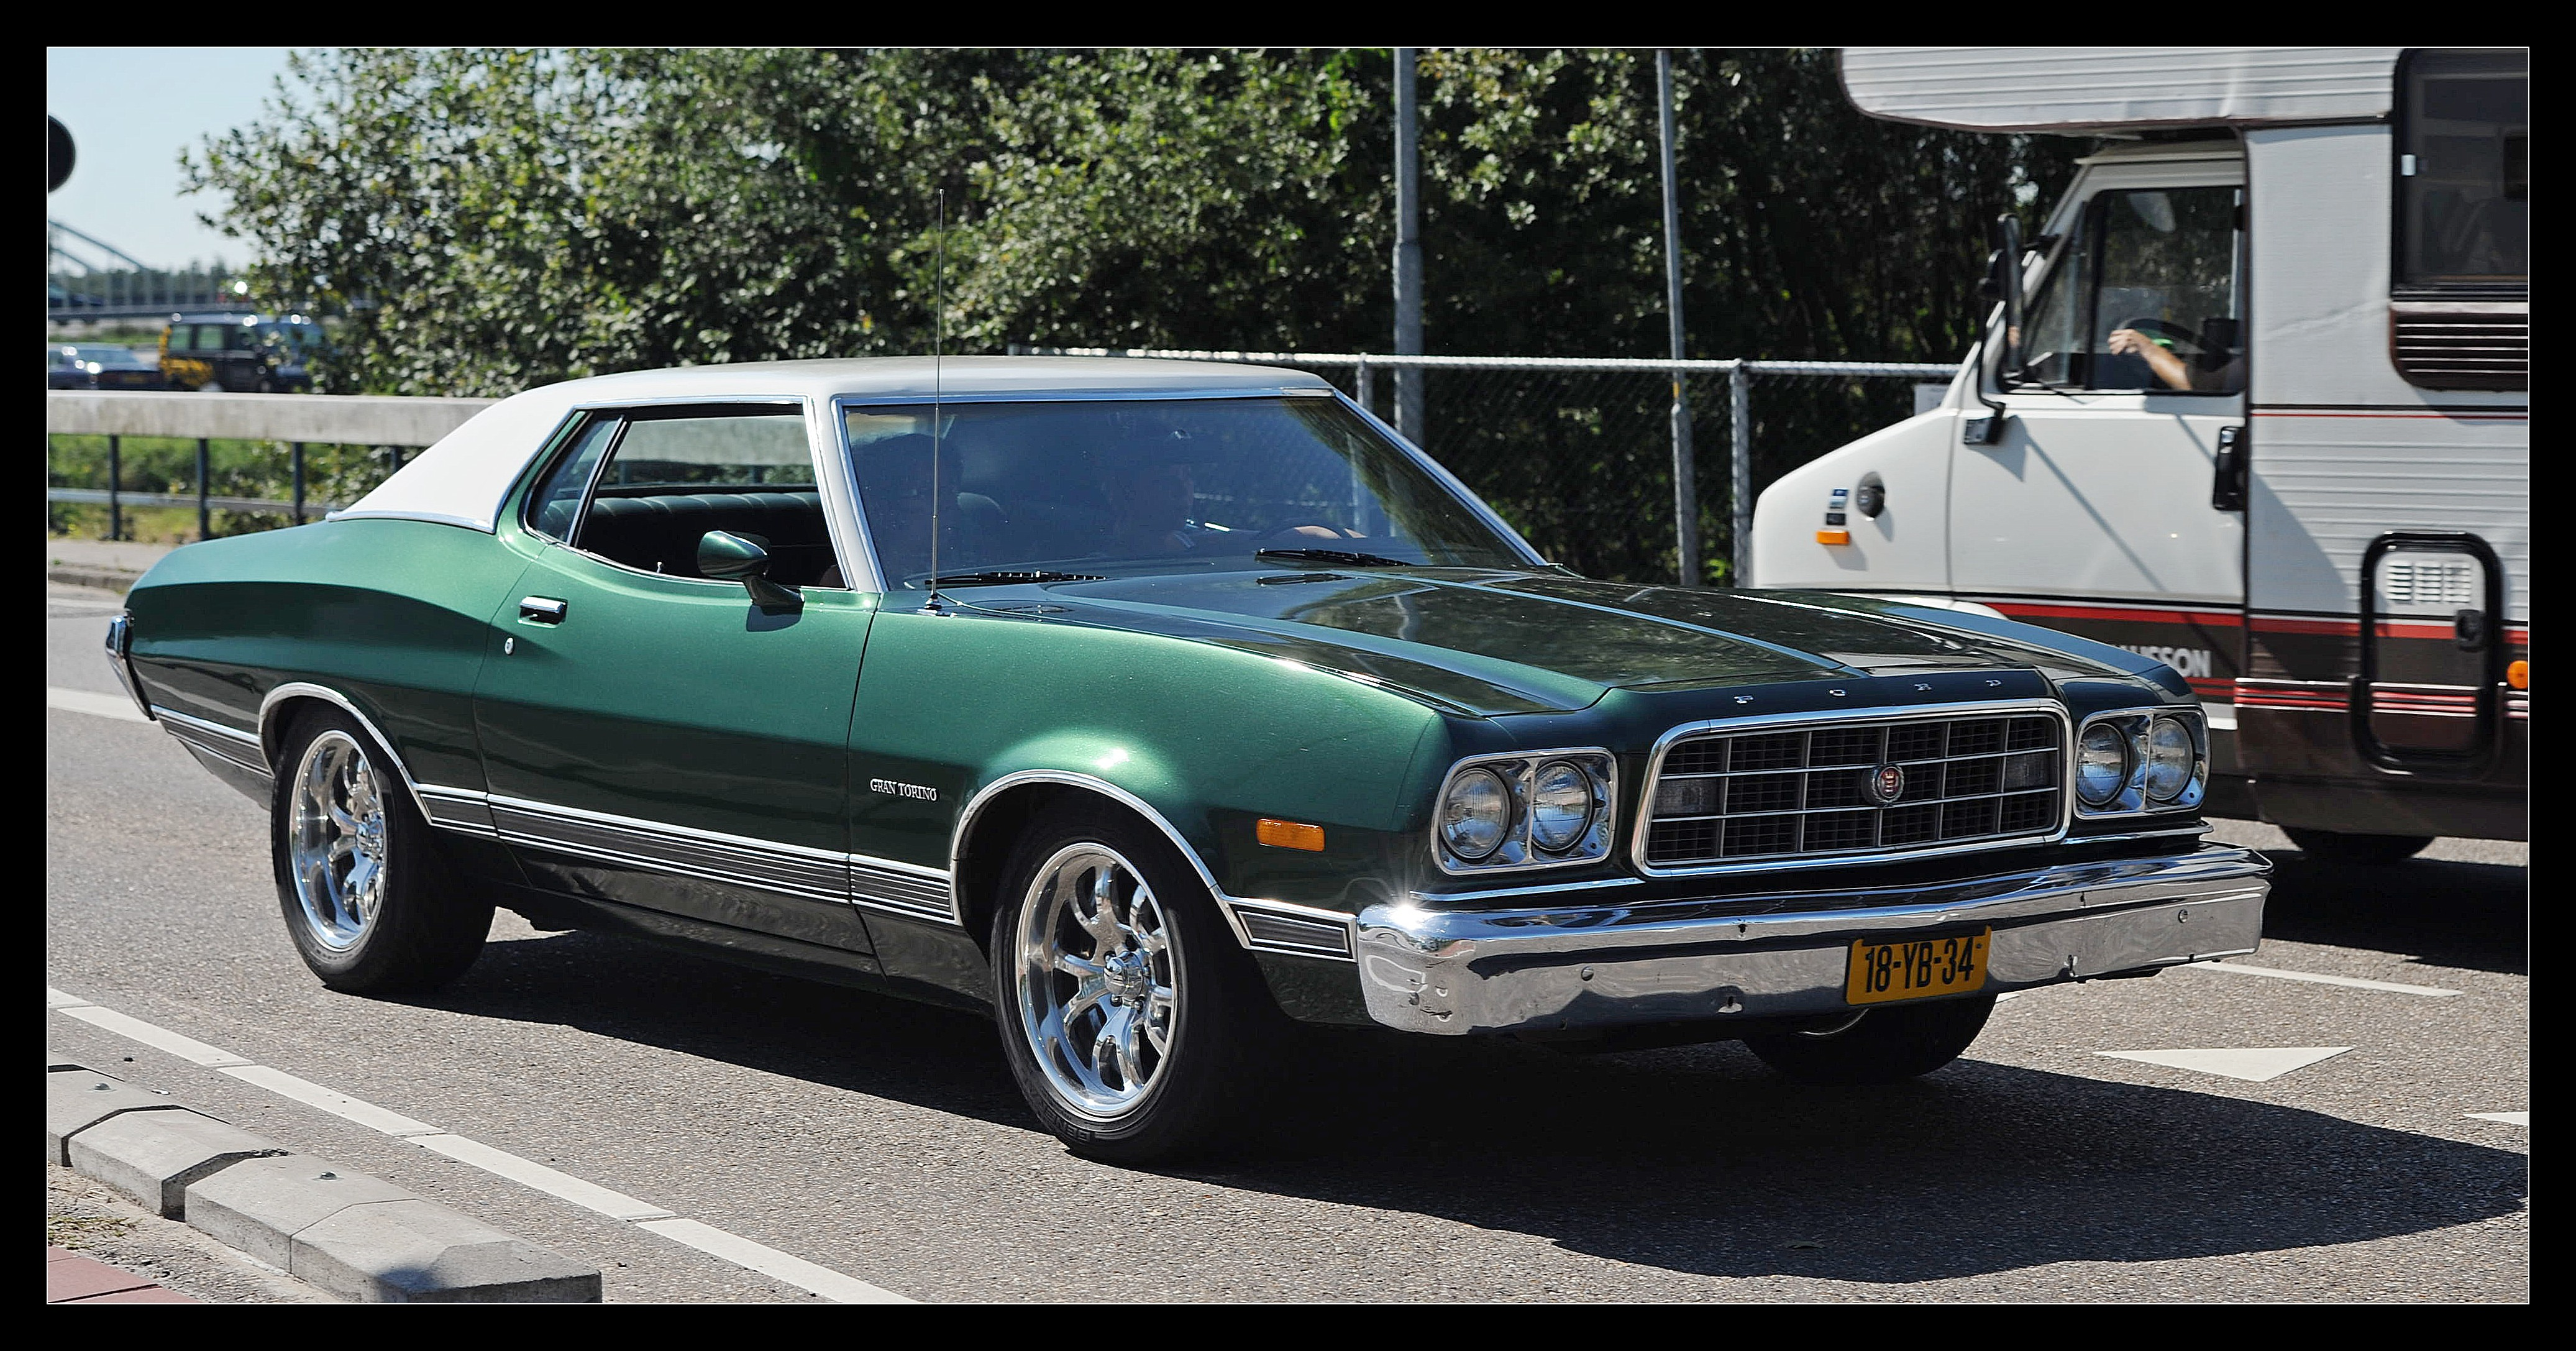 hot rod rods classic muscle 1973 Ford Torino t wallpaper background